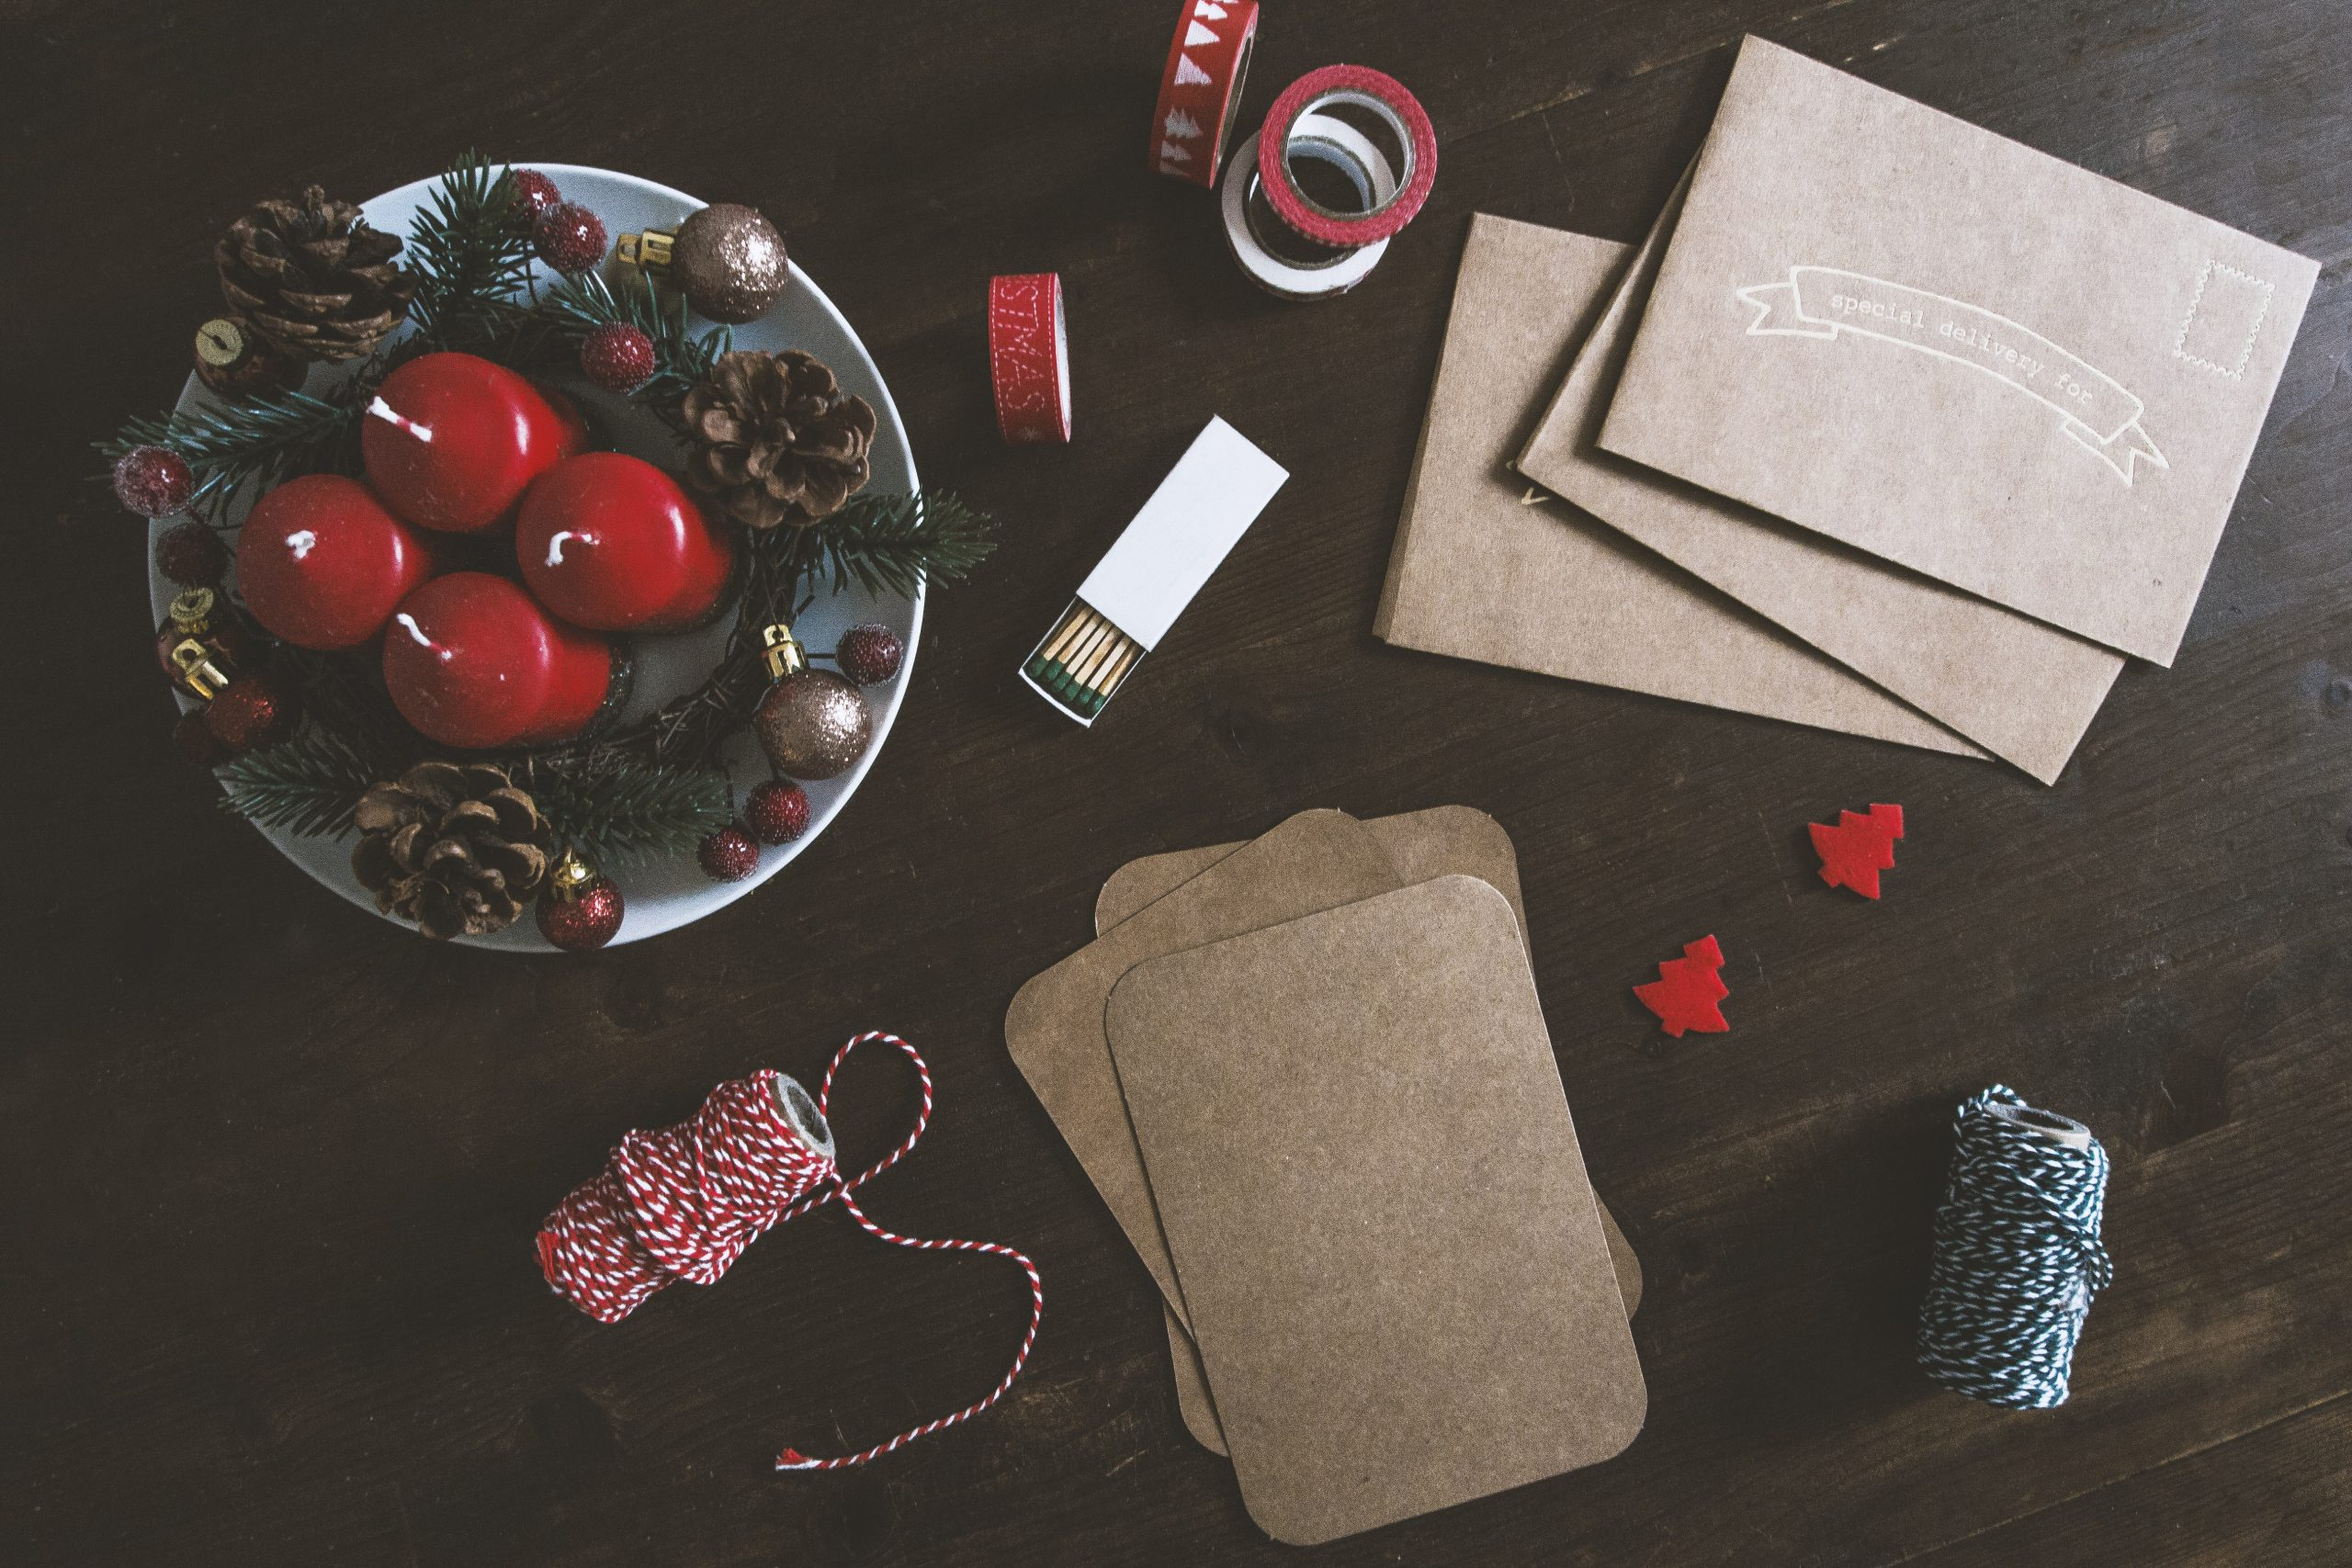 A brown table decorated with two rolls of thread, brown envelops, brown pads, designer tape, two small red Christmas trees, an open matchbox, and a plate with four red candles, pine cones, berries, and baubles.